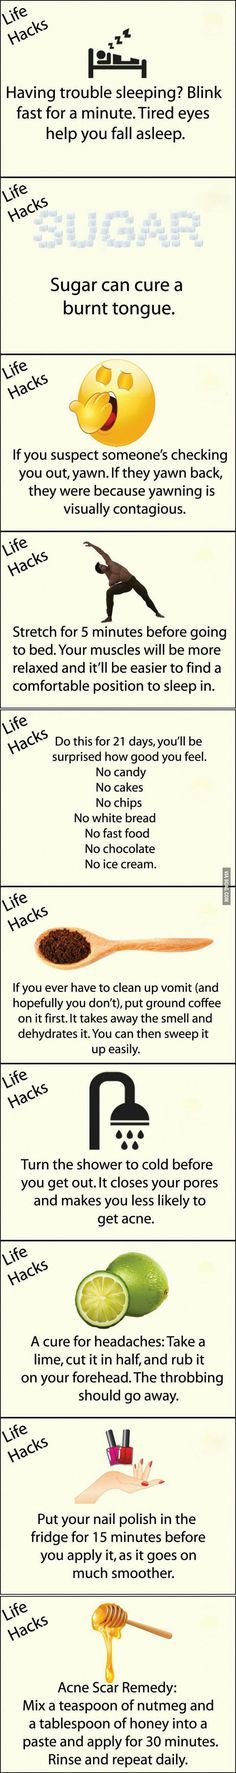 Useful life hacks - Well I already do the cold water thing which works so I have faith in this list.